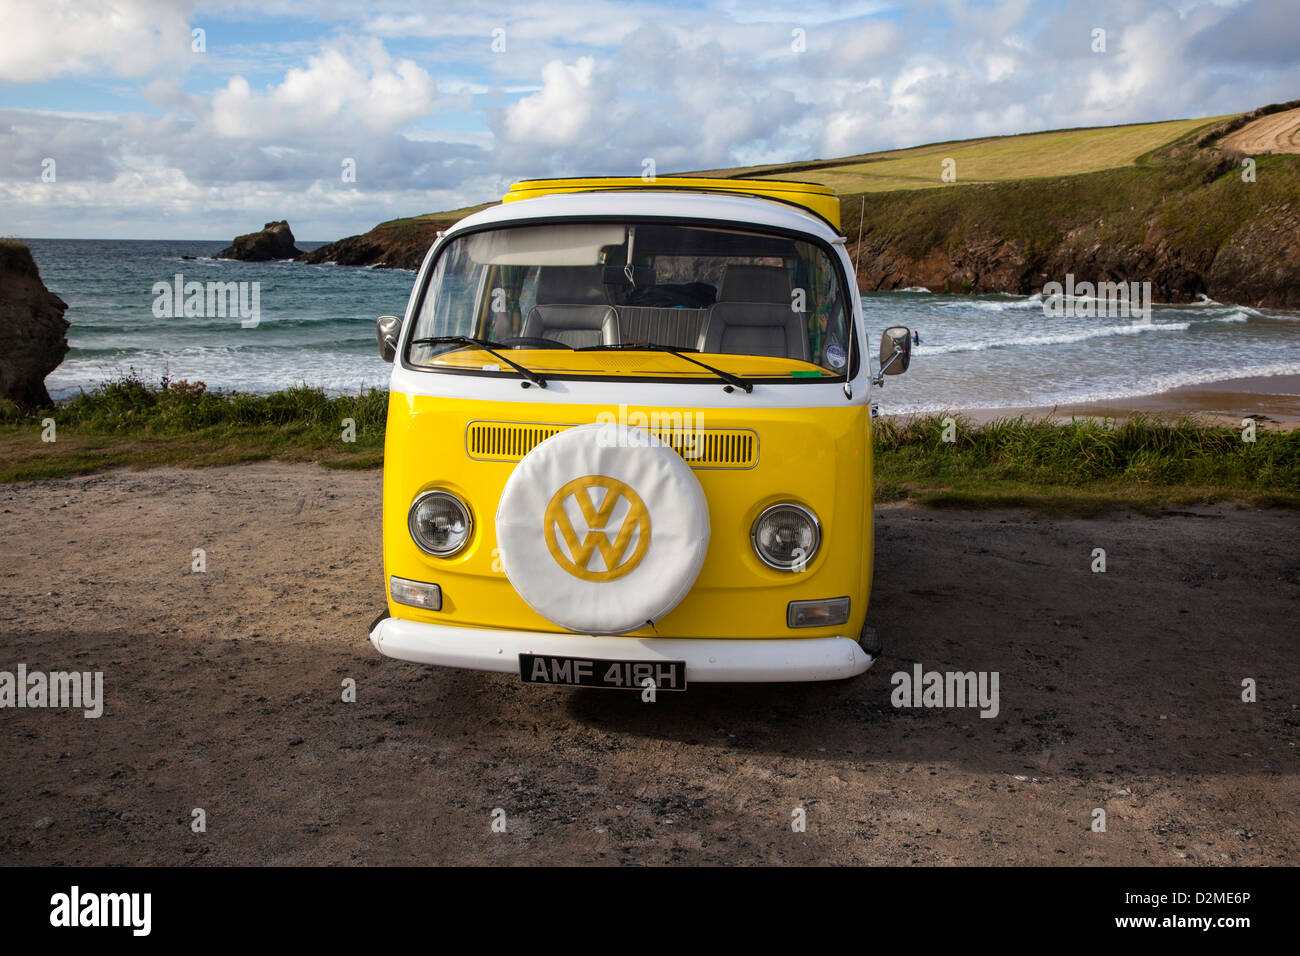 VW Campavan, Trevone Bay near Padstow, North Cornwall - Stock Image